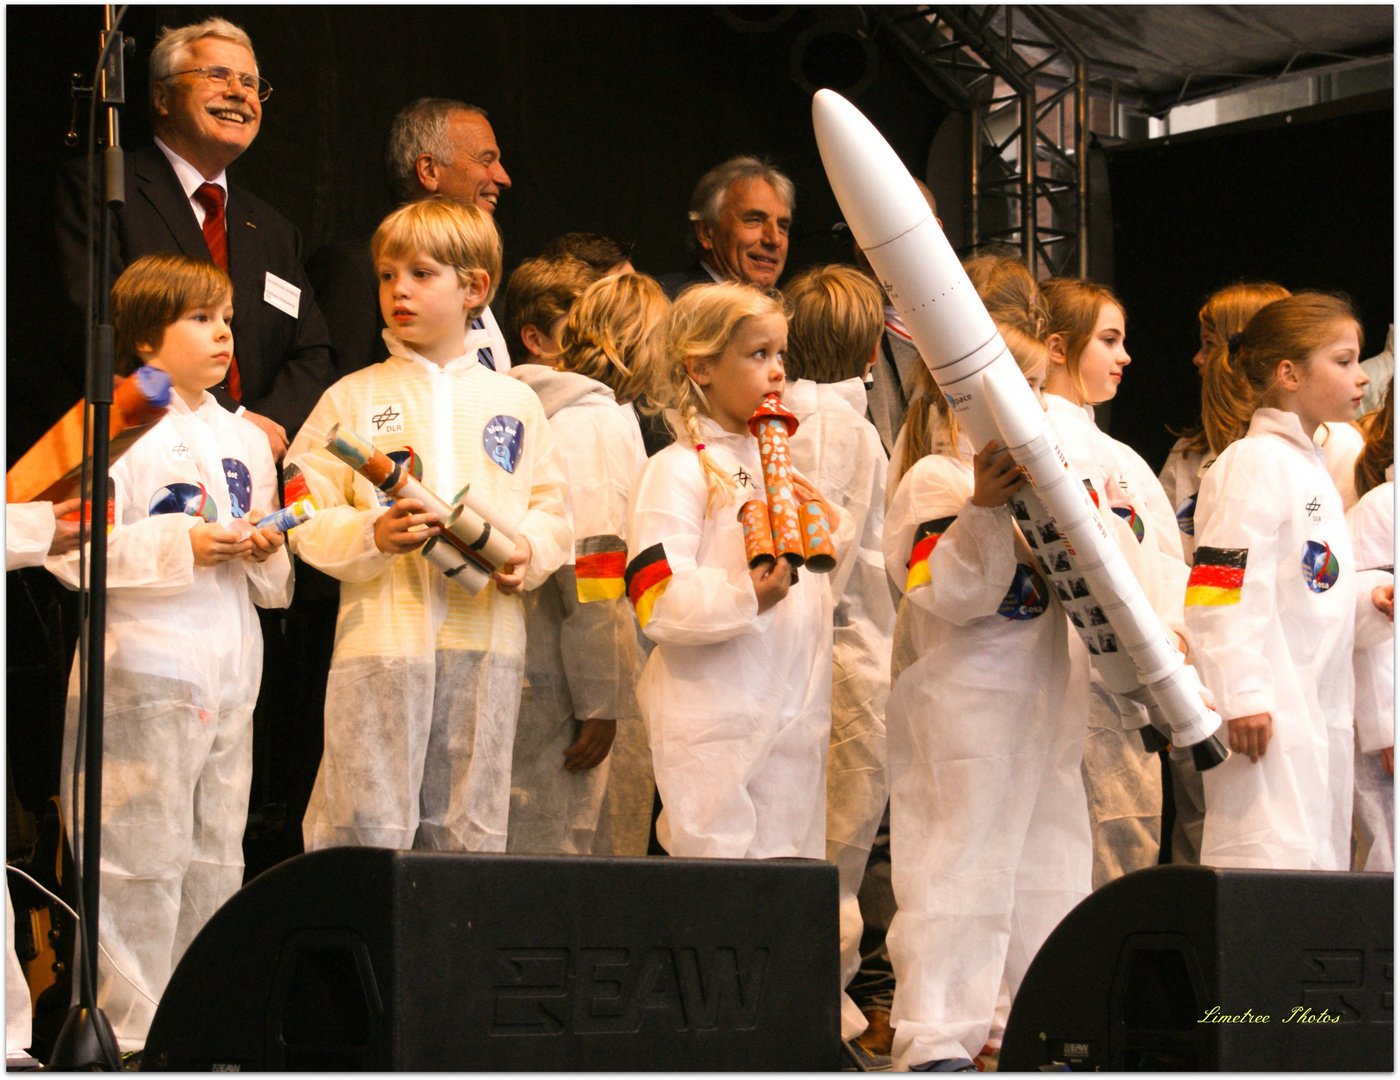 The Next Generation of Astronauts